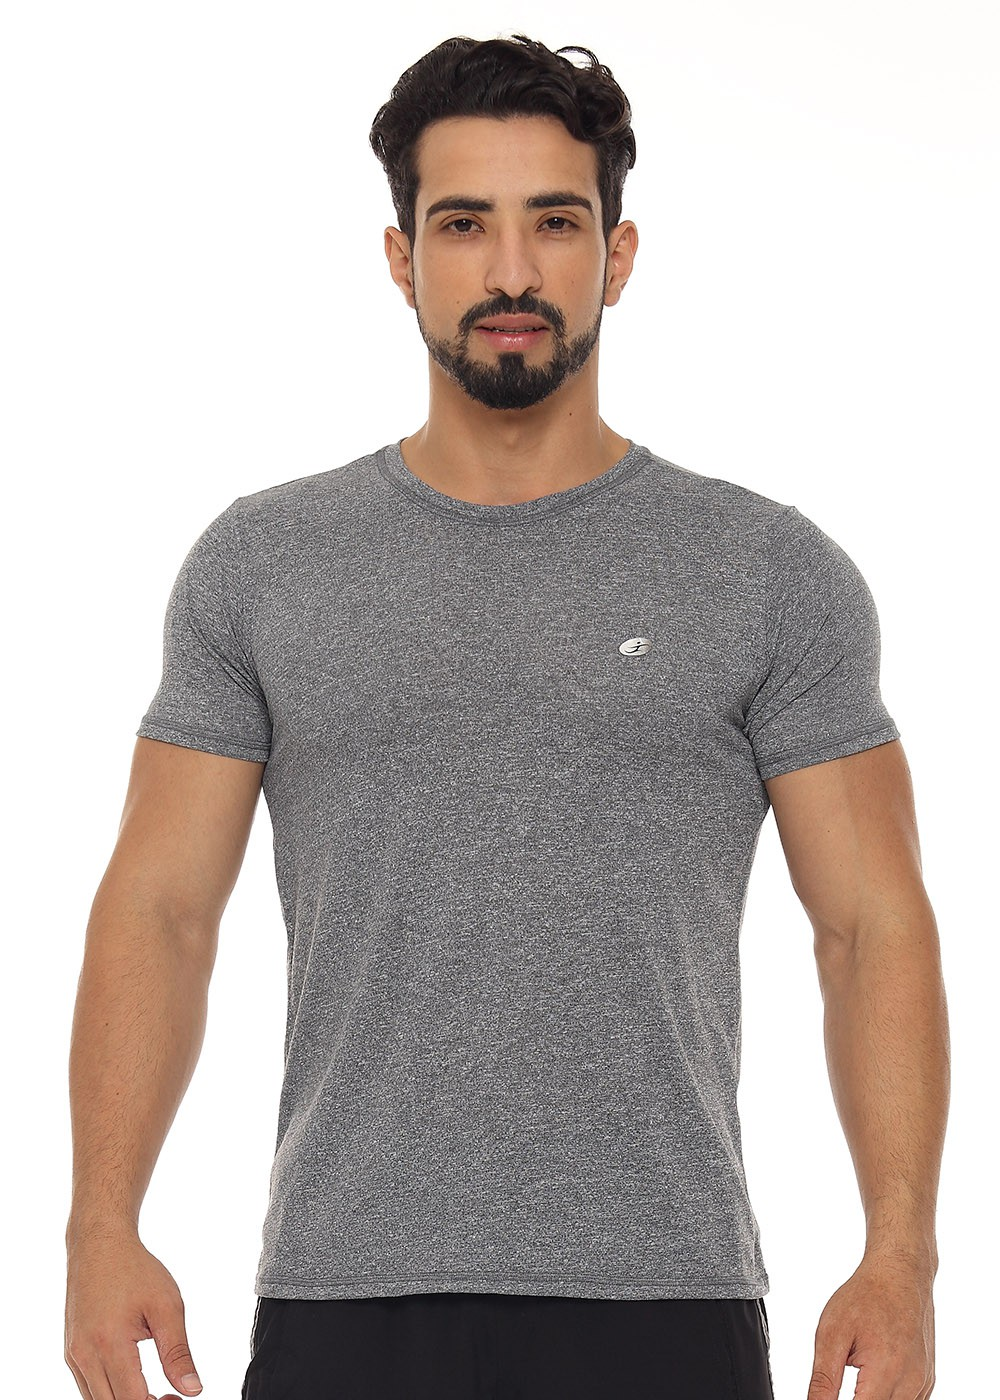 CAMISETA UNISSEX COM DETALHE JUST FIT - MESCLA